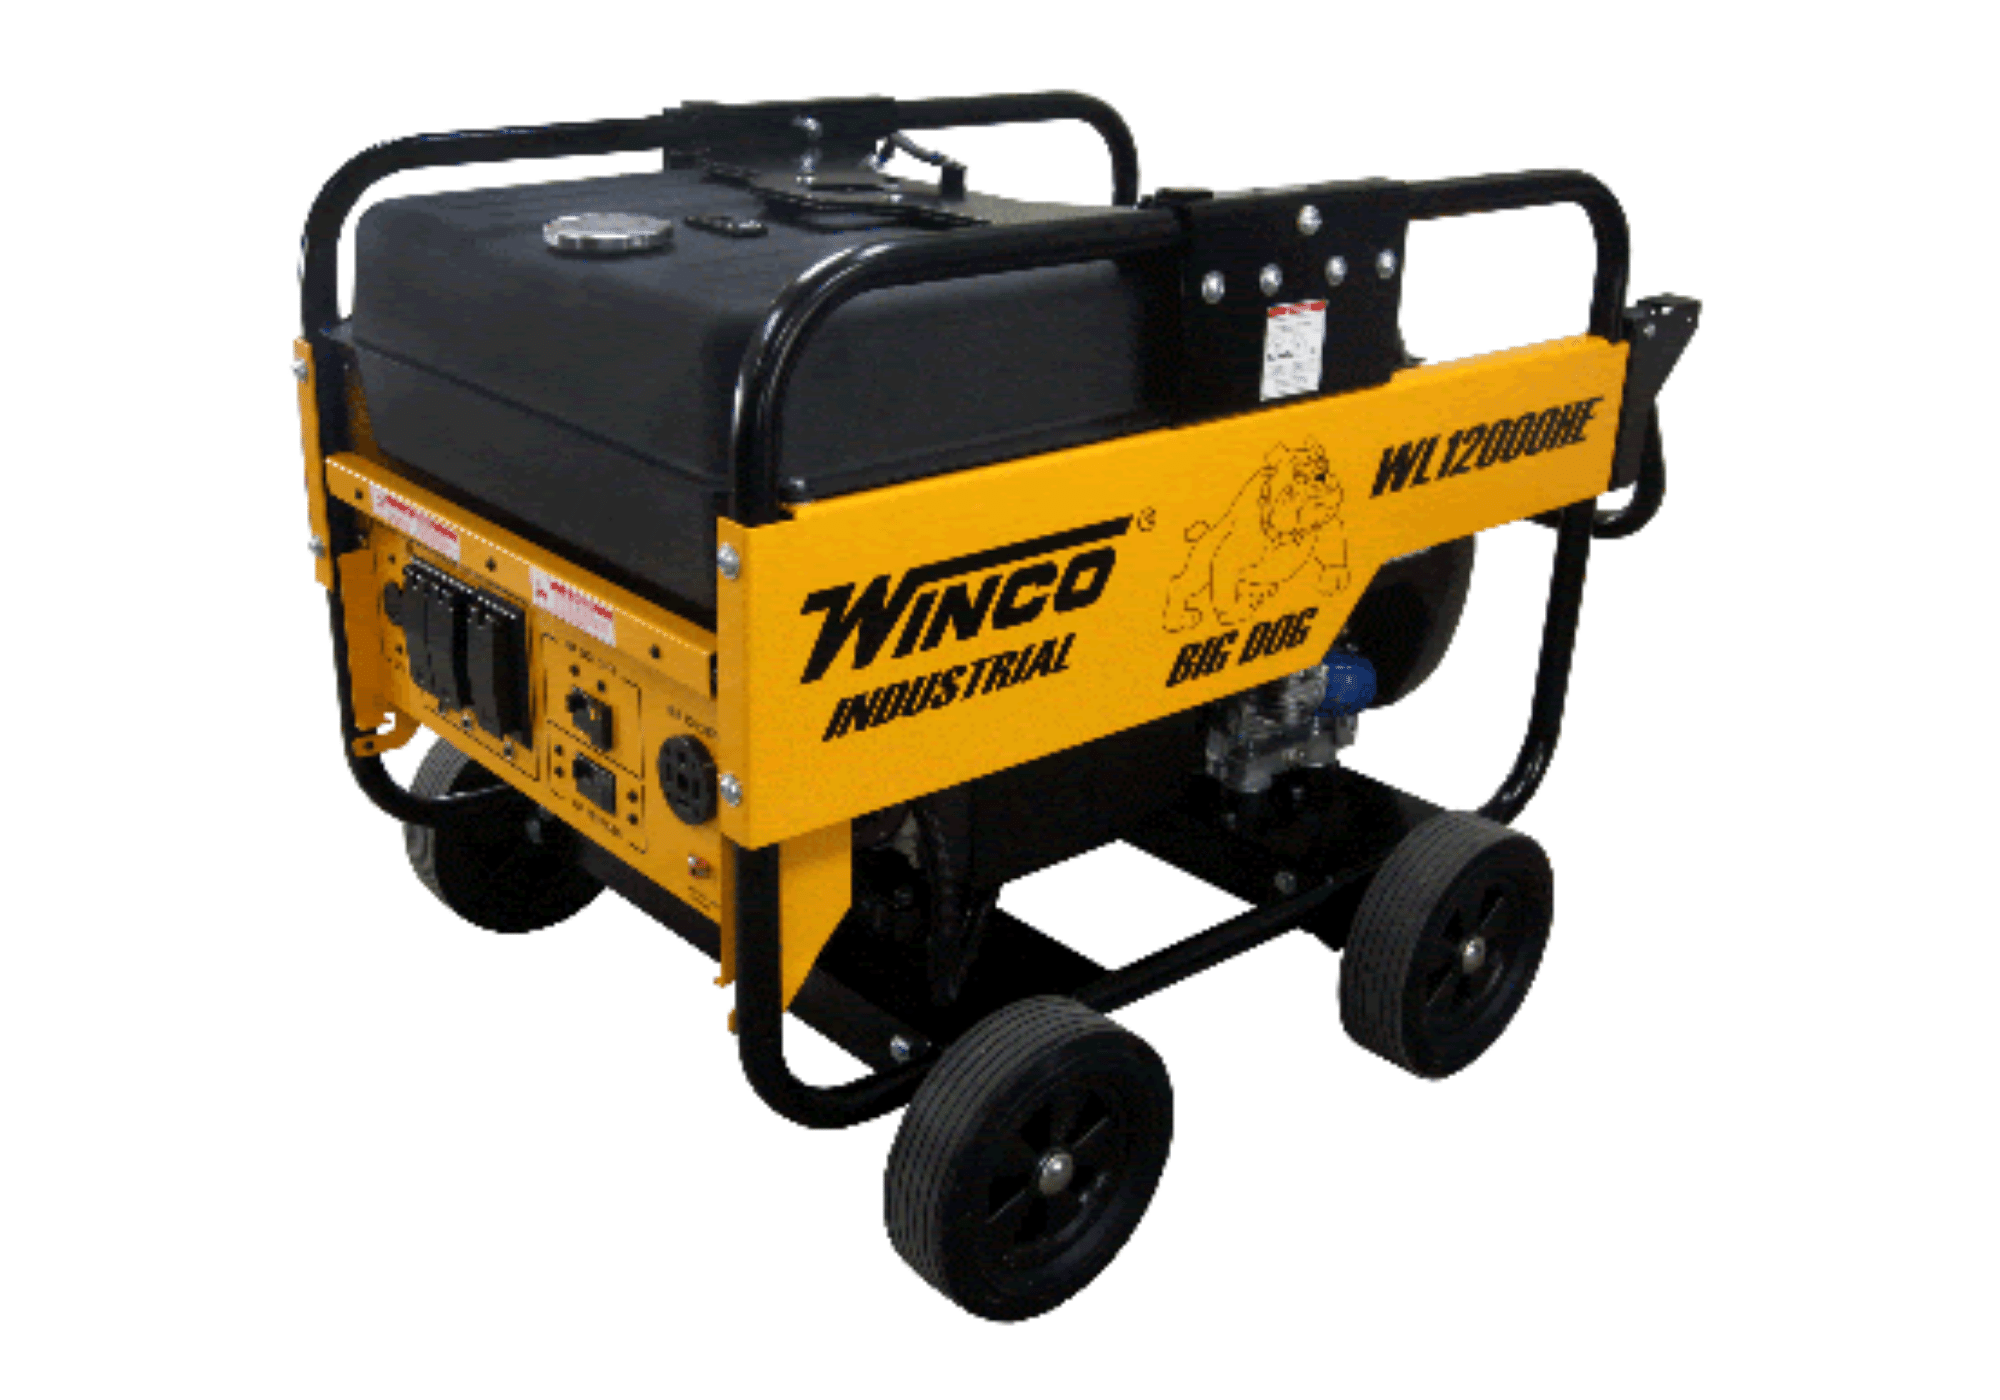 Generator - Can Supply Electric Grinders